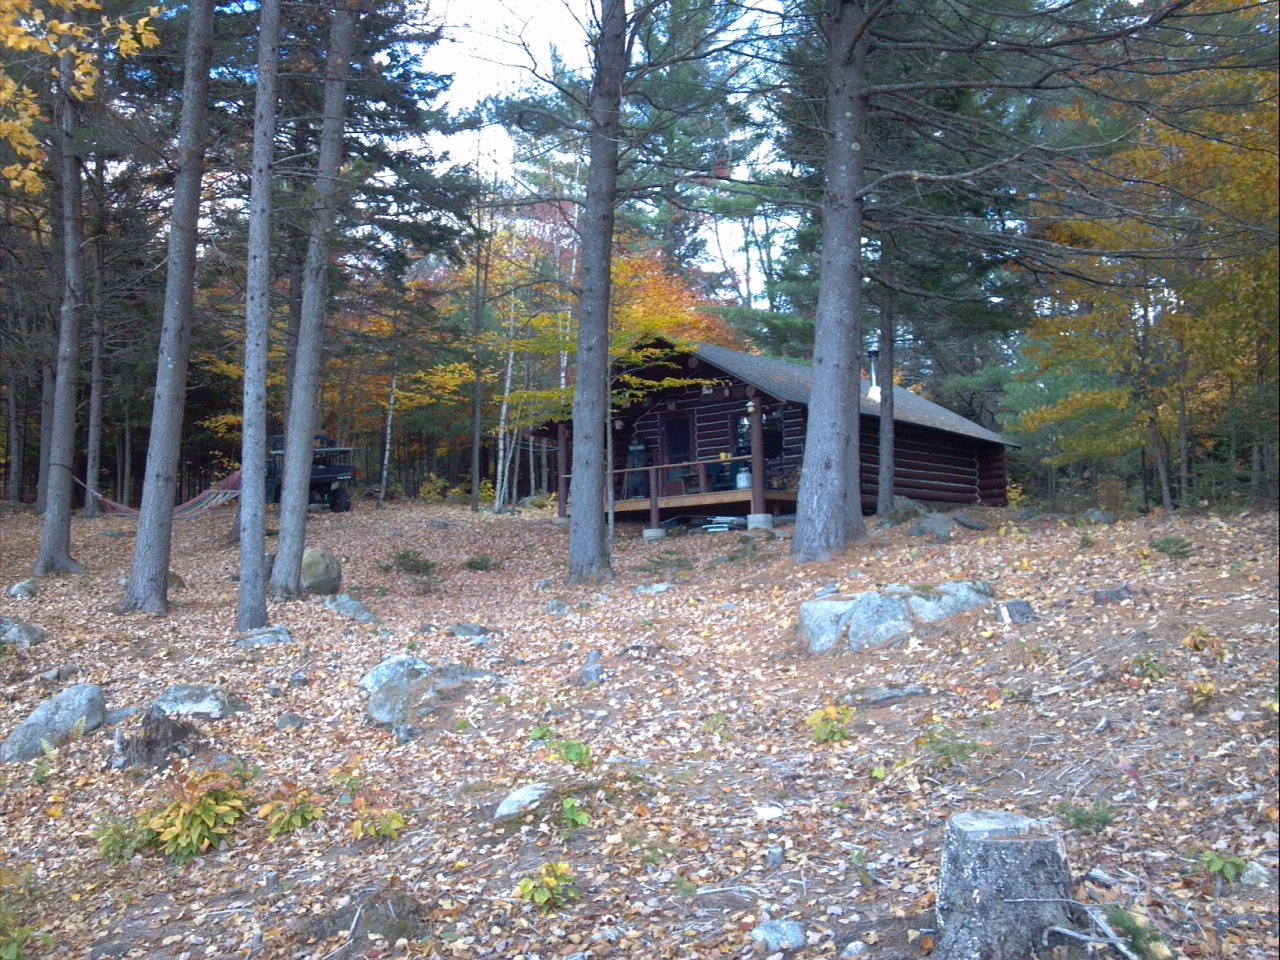 Classic log cabin in the woods